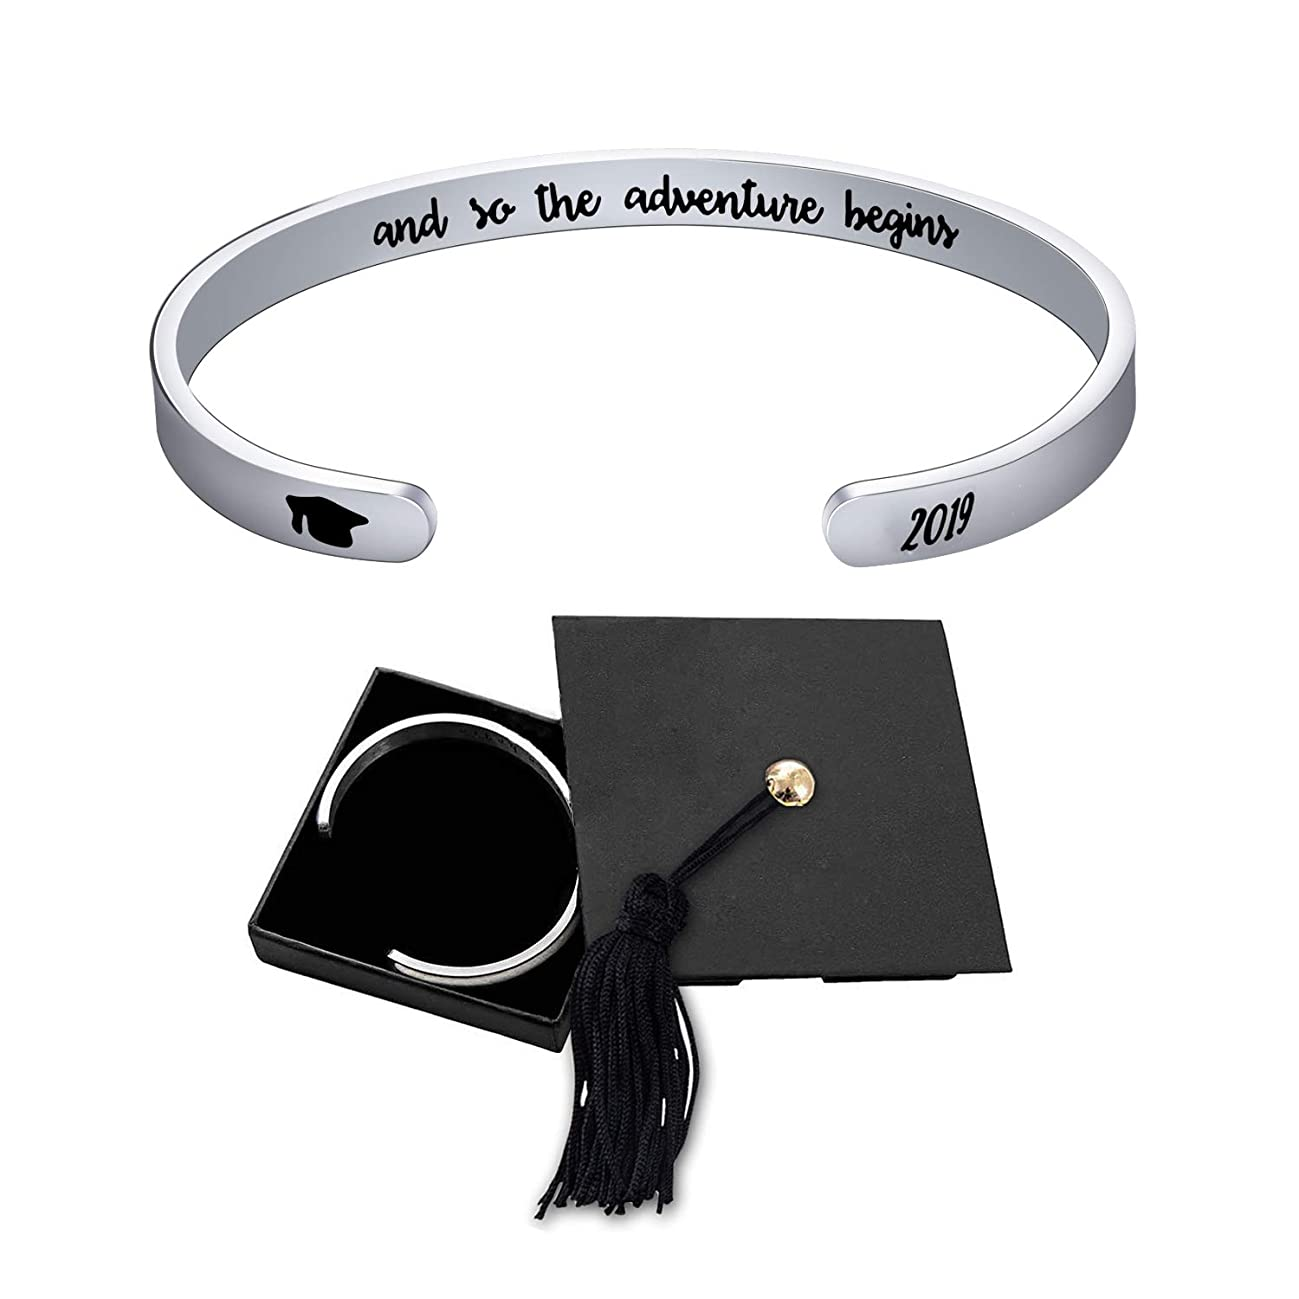 Jdesign Womens Grad Cap 2019 Bangle Cuff Bracelet Bangle Engraved Mantra Quote and so The Adventure Begins Inspirational Gifts Graduation Gifts Bracelet for Women